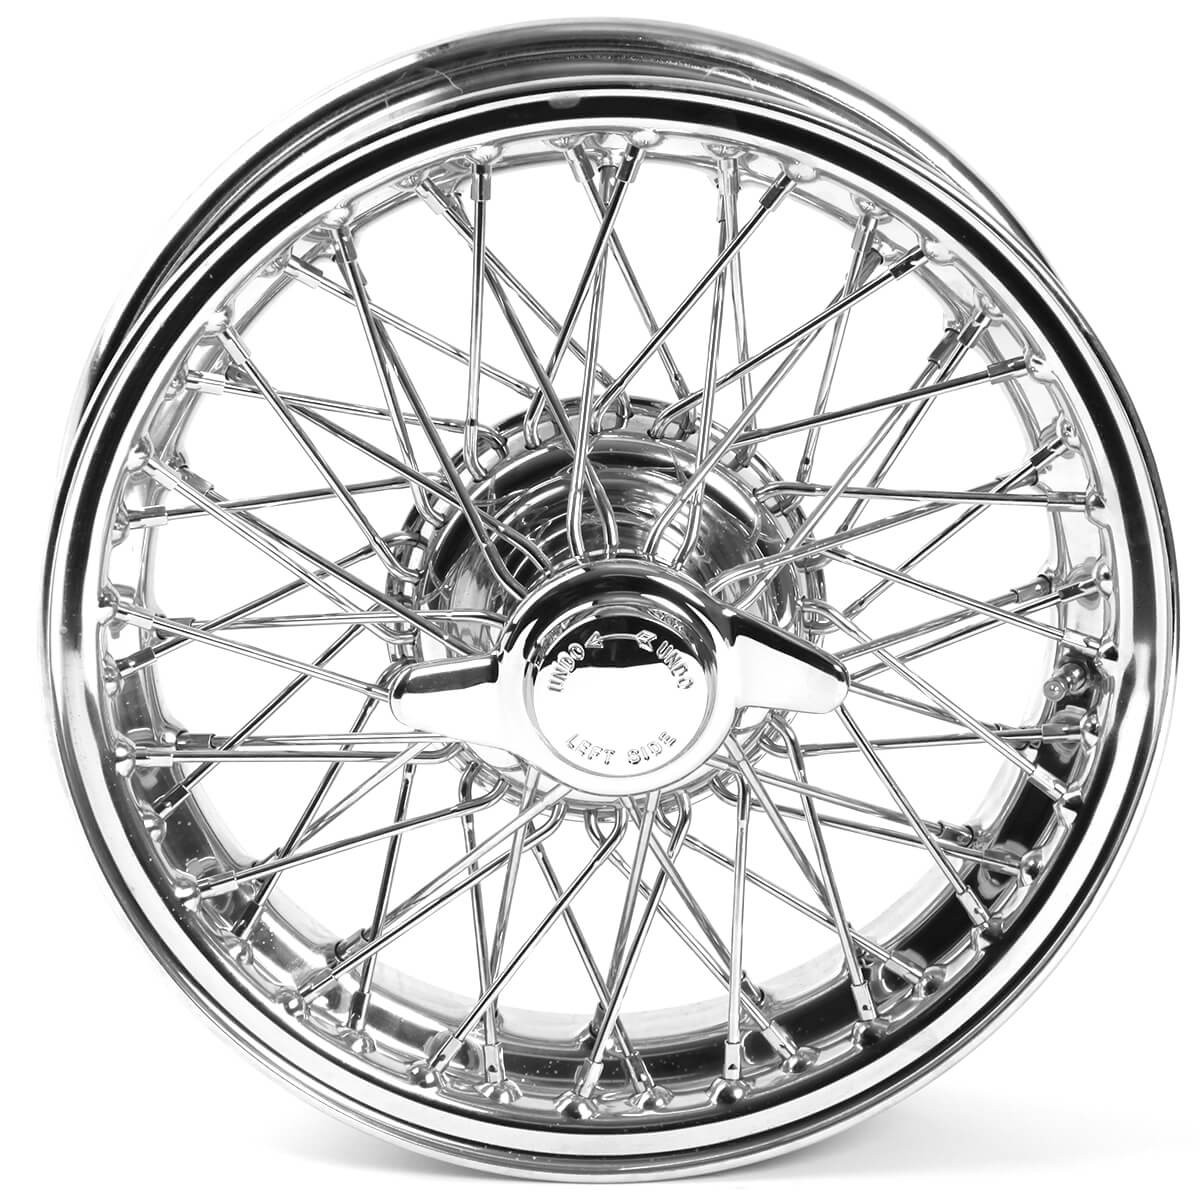 454 835 Wire Wheel Chrome 13 X4 5 60 Spoke Tube Type